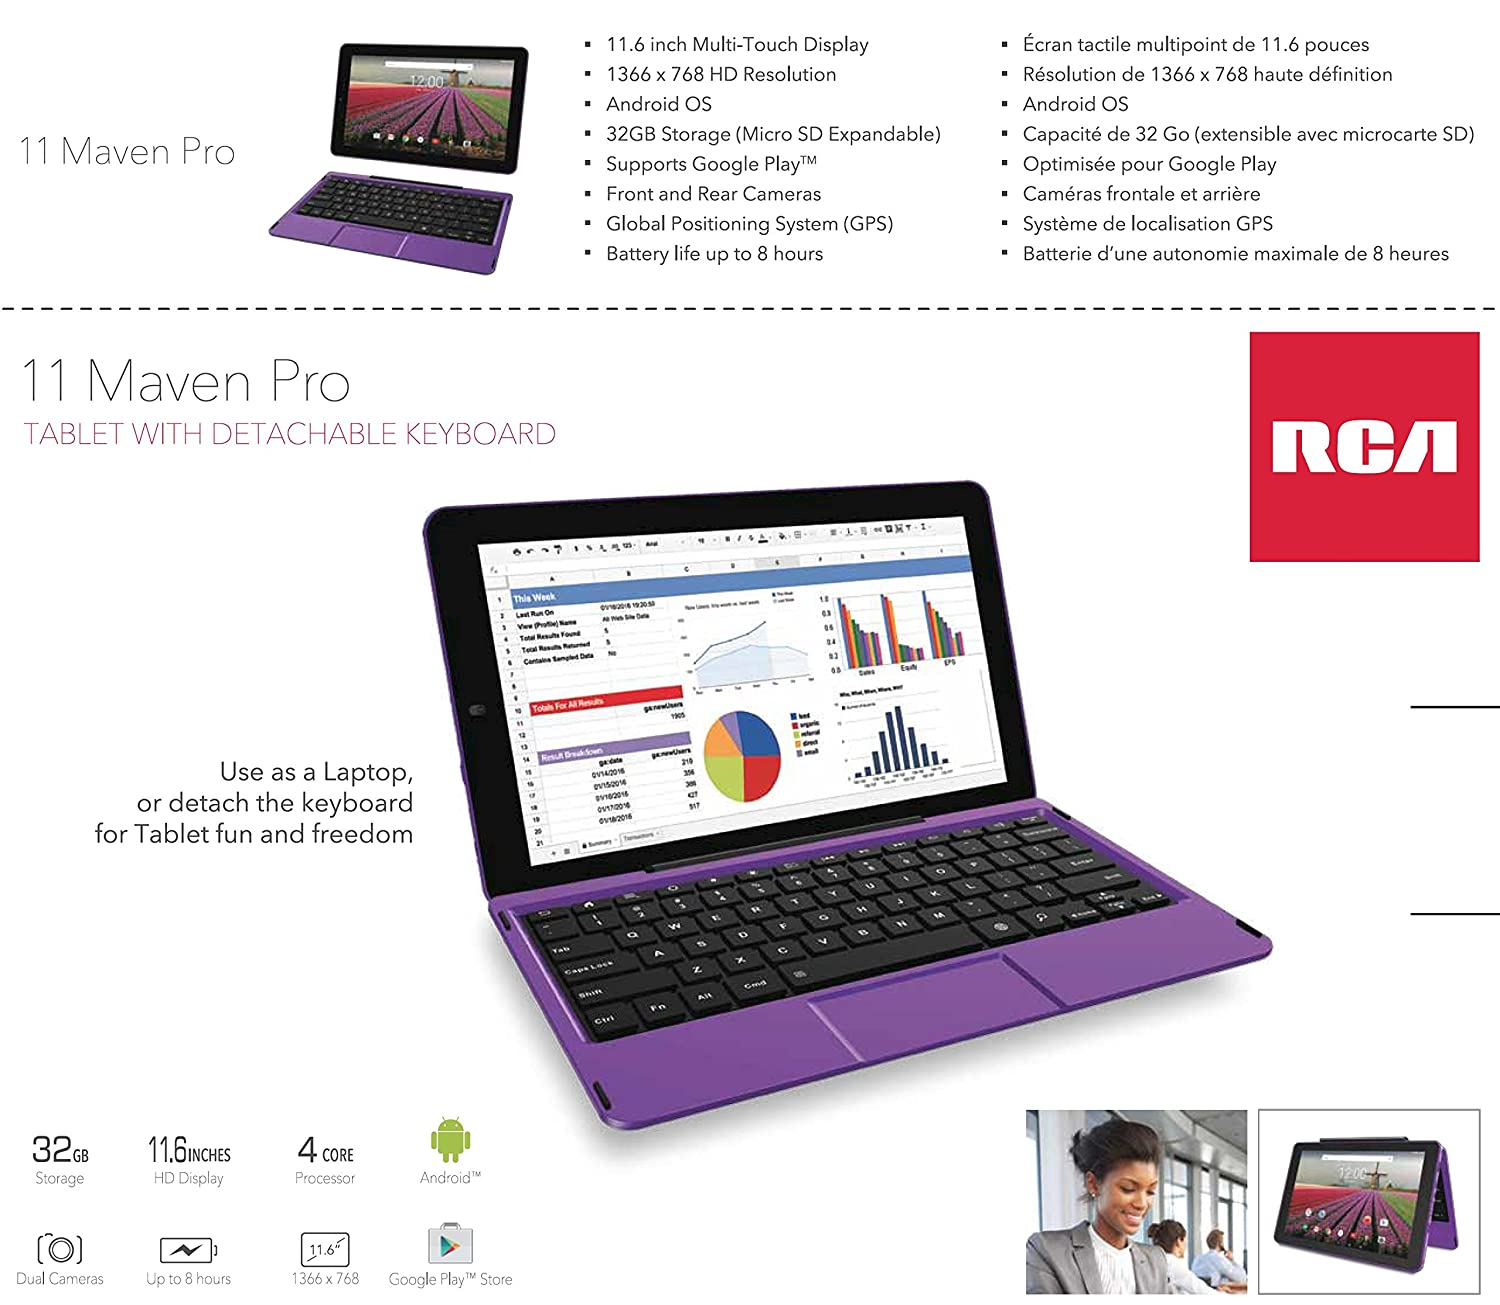 Rca 11 Marven Pro 116 Inch Tablet Quad Core 32gb1gb Ram Hdmi 6 Bluetooth Wifi With Detachable Keyboard Purple Computers Tablets